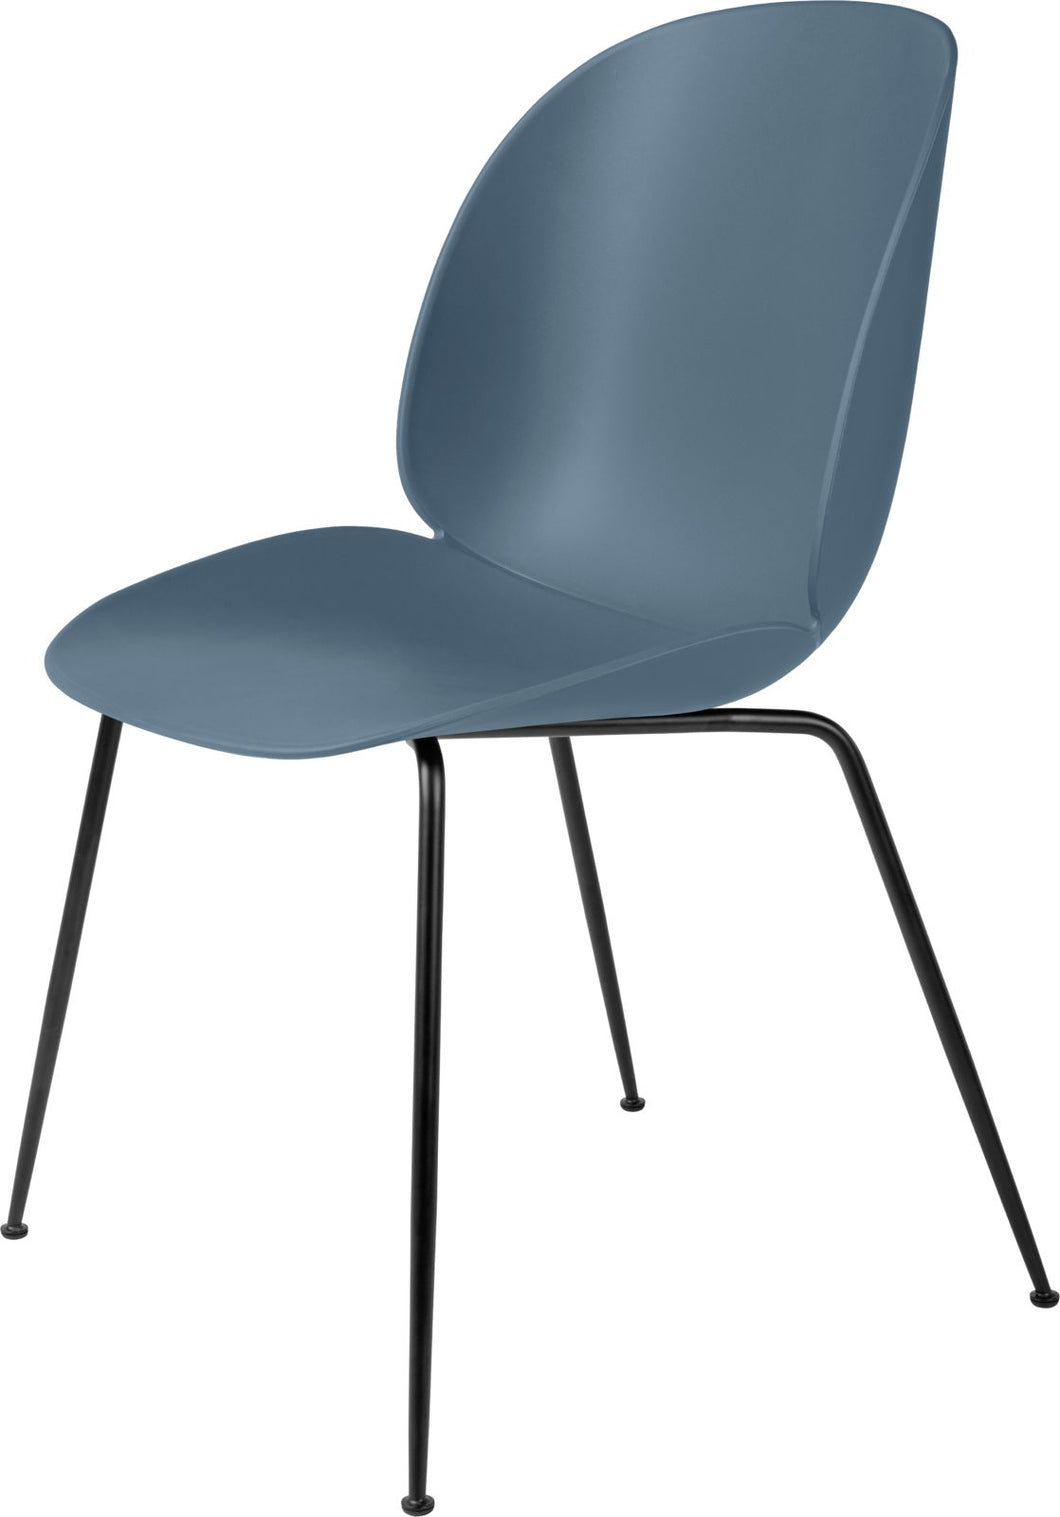 Gubi Beetle Dining Chair - Black base Smoke Blue